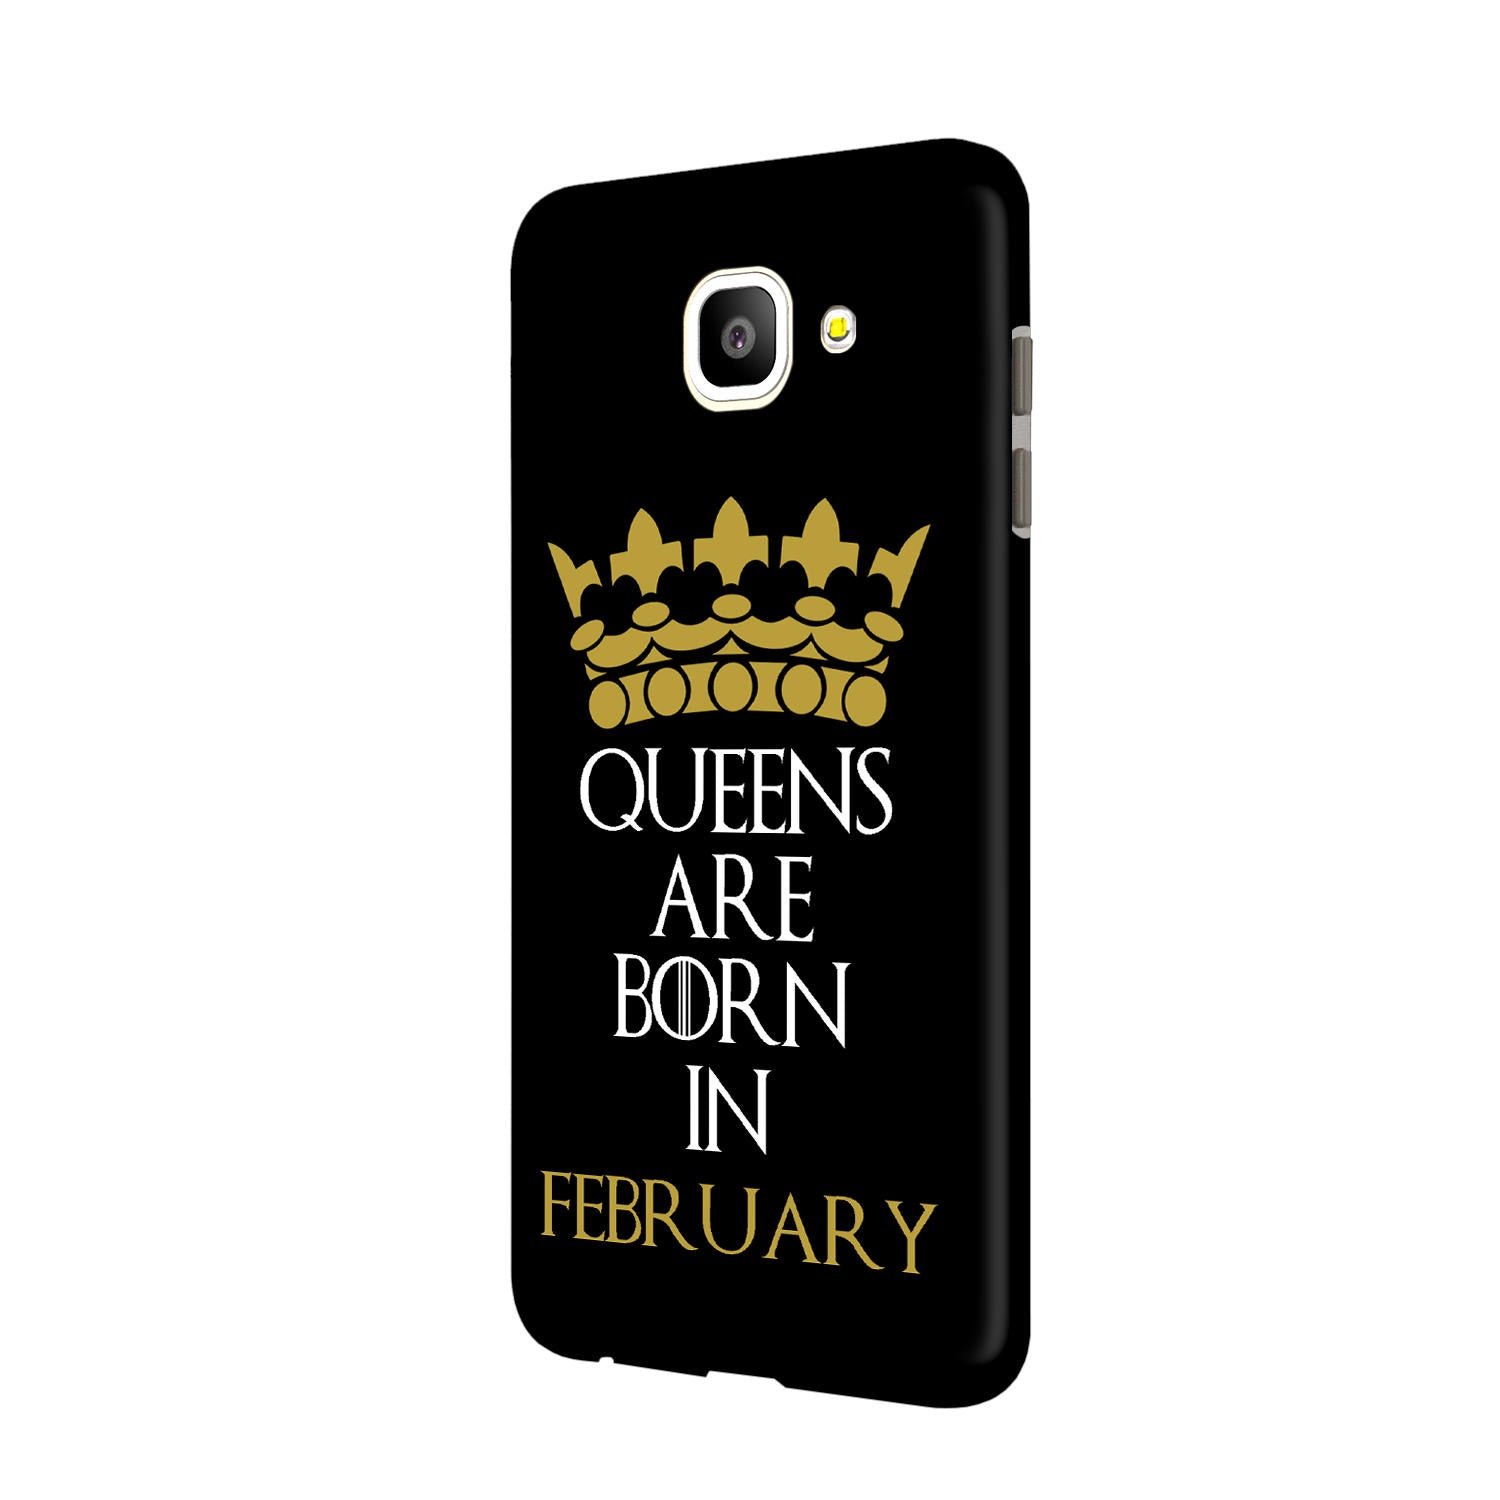 Queens February Samsung Galaxy J7 Max Mobile Cover Case - MADANYU